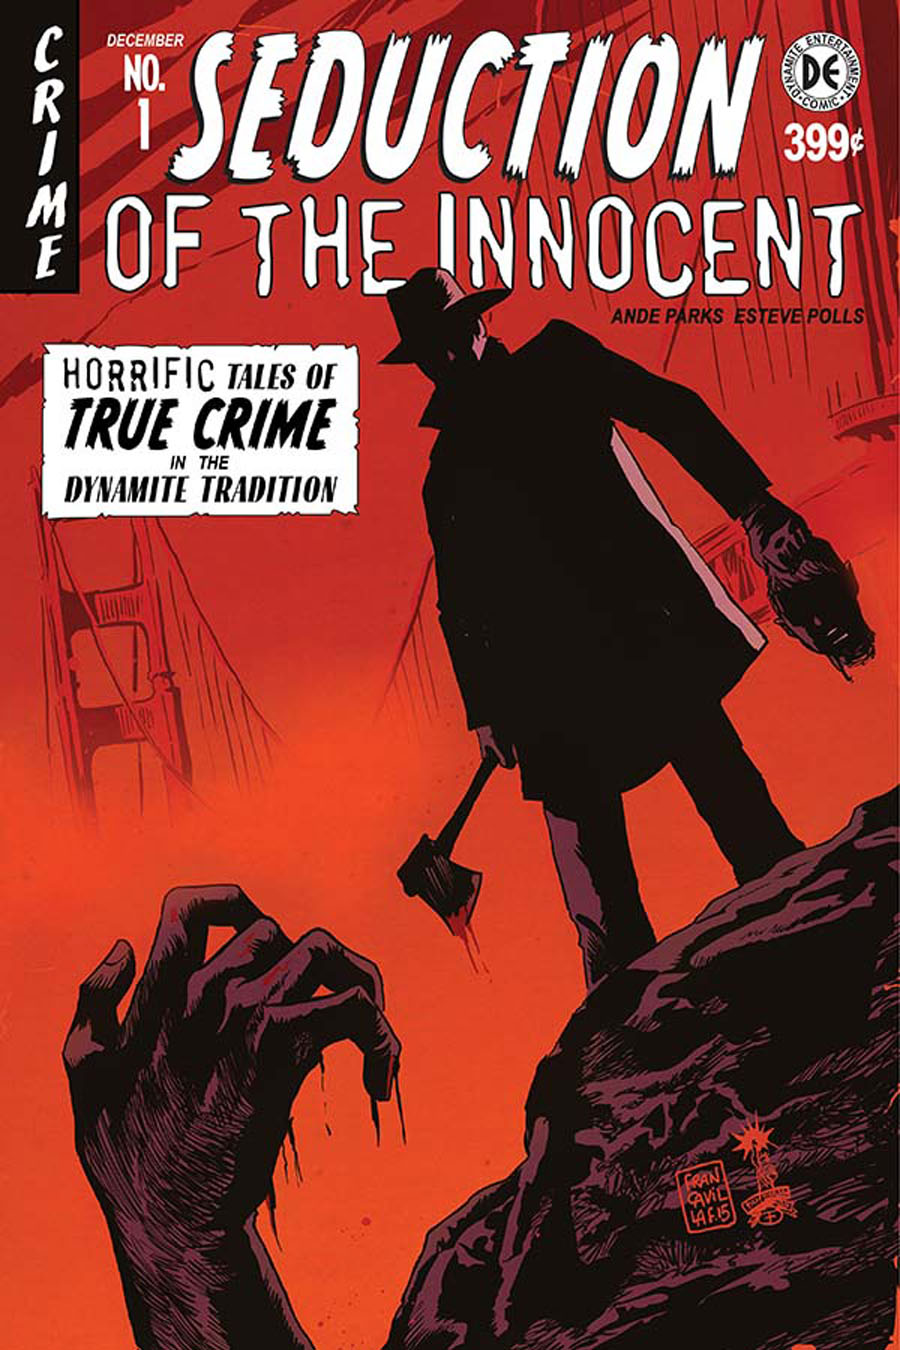 Seduction Of The Innocent (Dynamite) #1 Cover A Regular Francesco Francavilla Cover